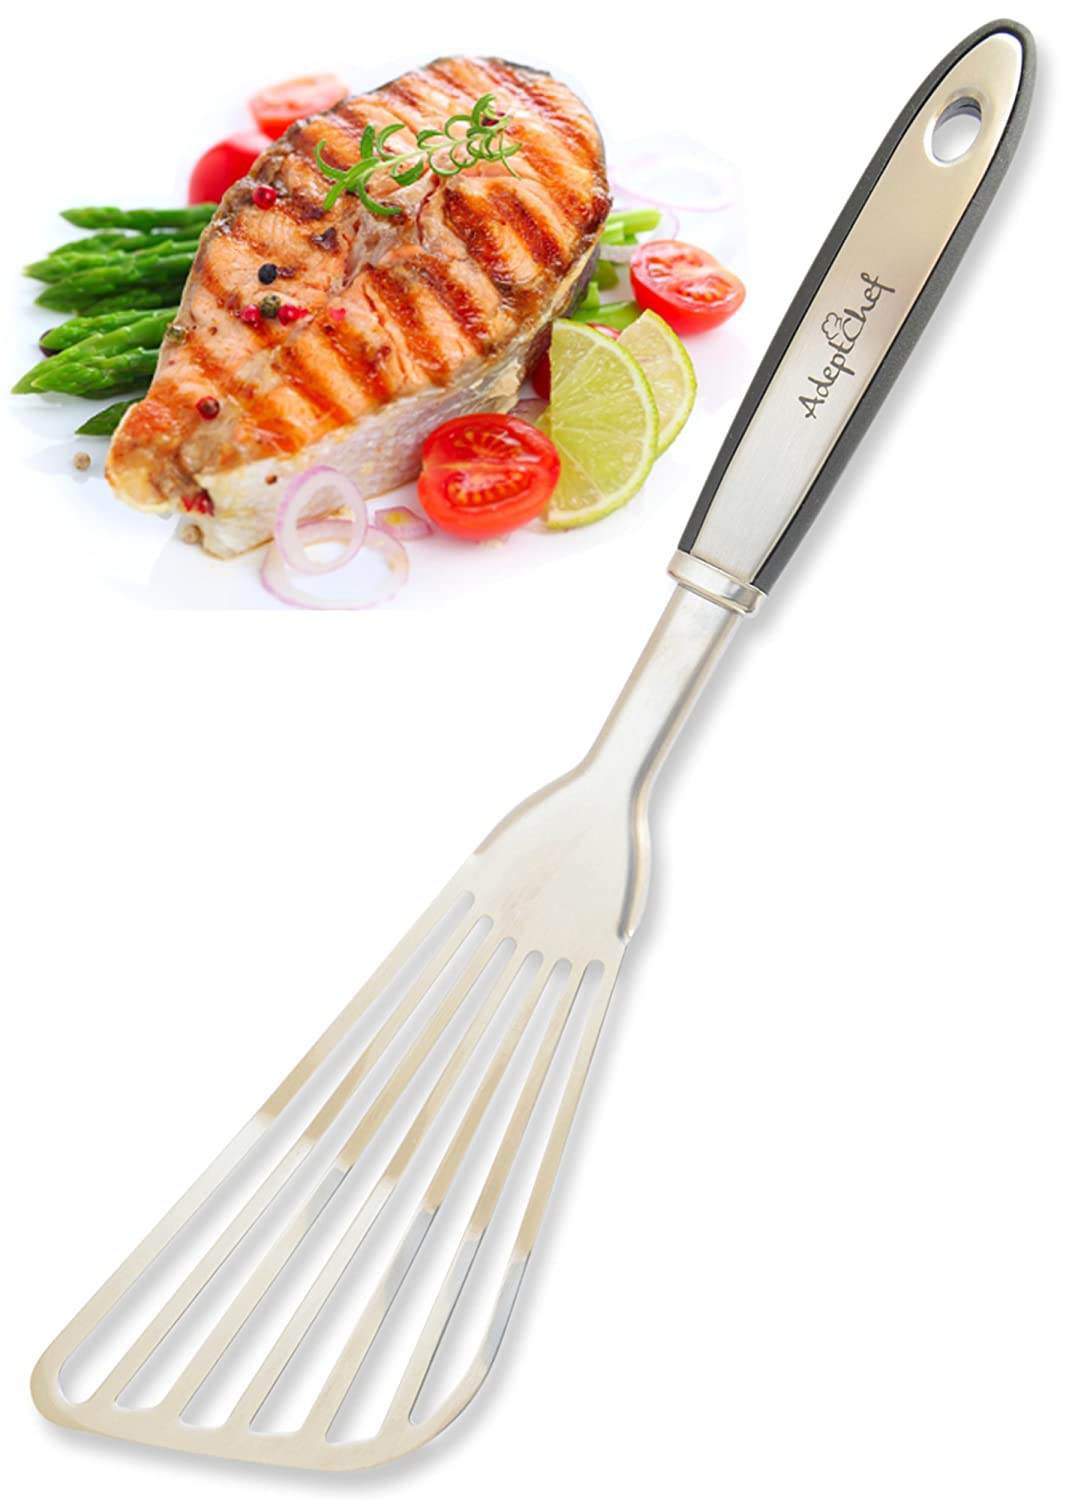 Fish Spatula - AdeptChef Stainless Steel, Slotted Turner - Thin-Edged Design Ideal For Turning & Flipping To Enhance Frying & Grilling - Sturdy Handle, Multi-Purpose - Buy Yours TODAY!